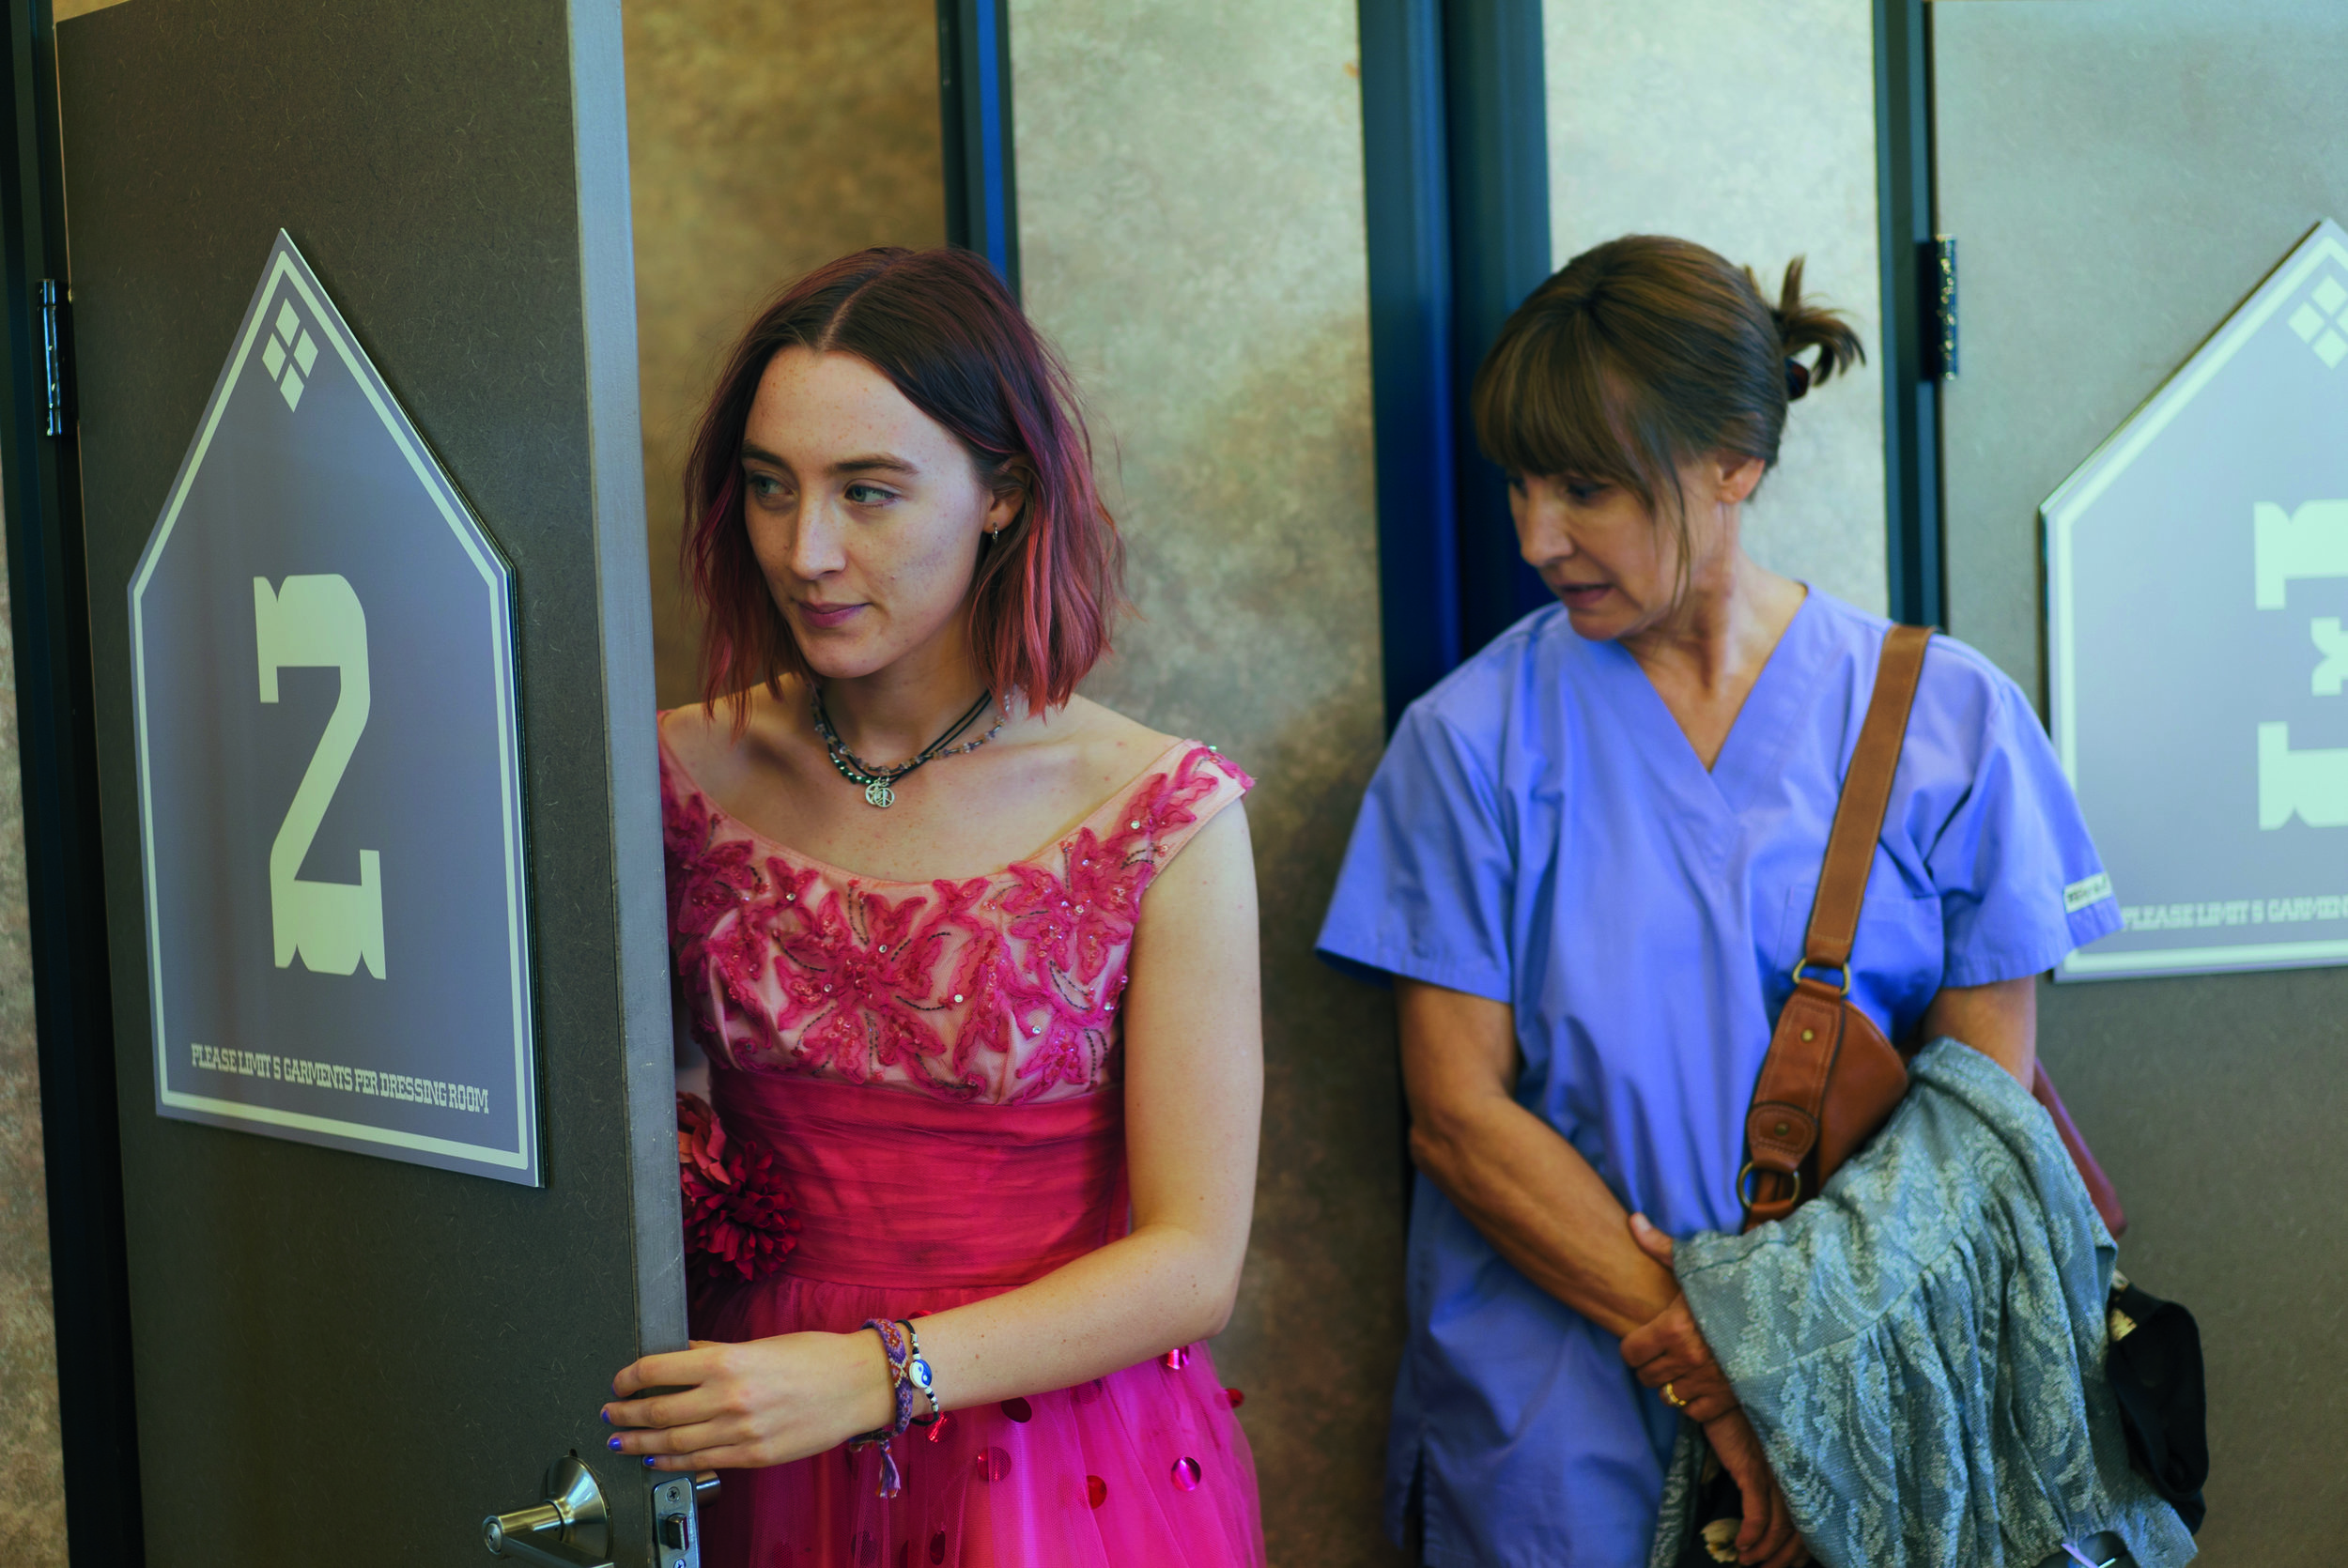 Saoirse Ronan and Laurie Metcalf in 'Lady Bird': Credit: Universal Pictures